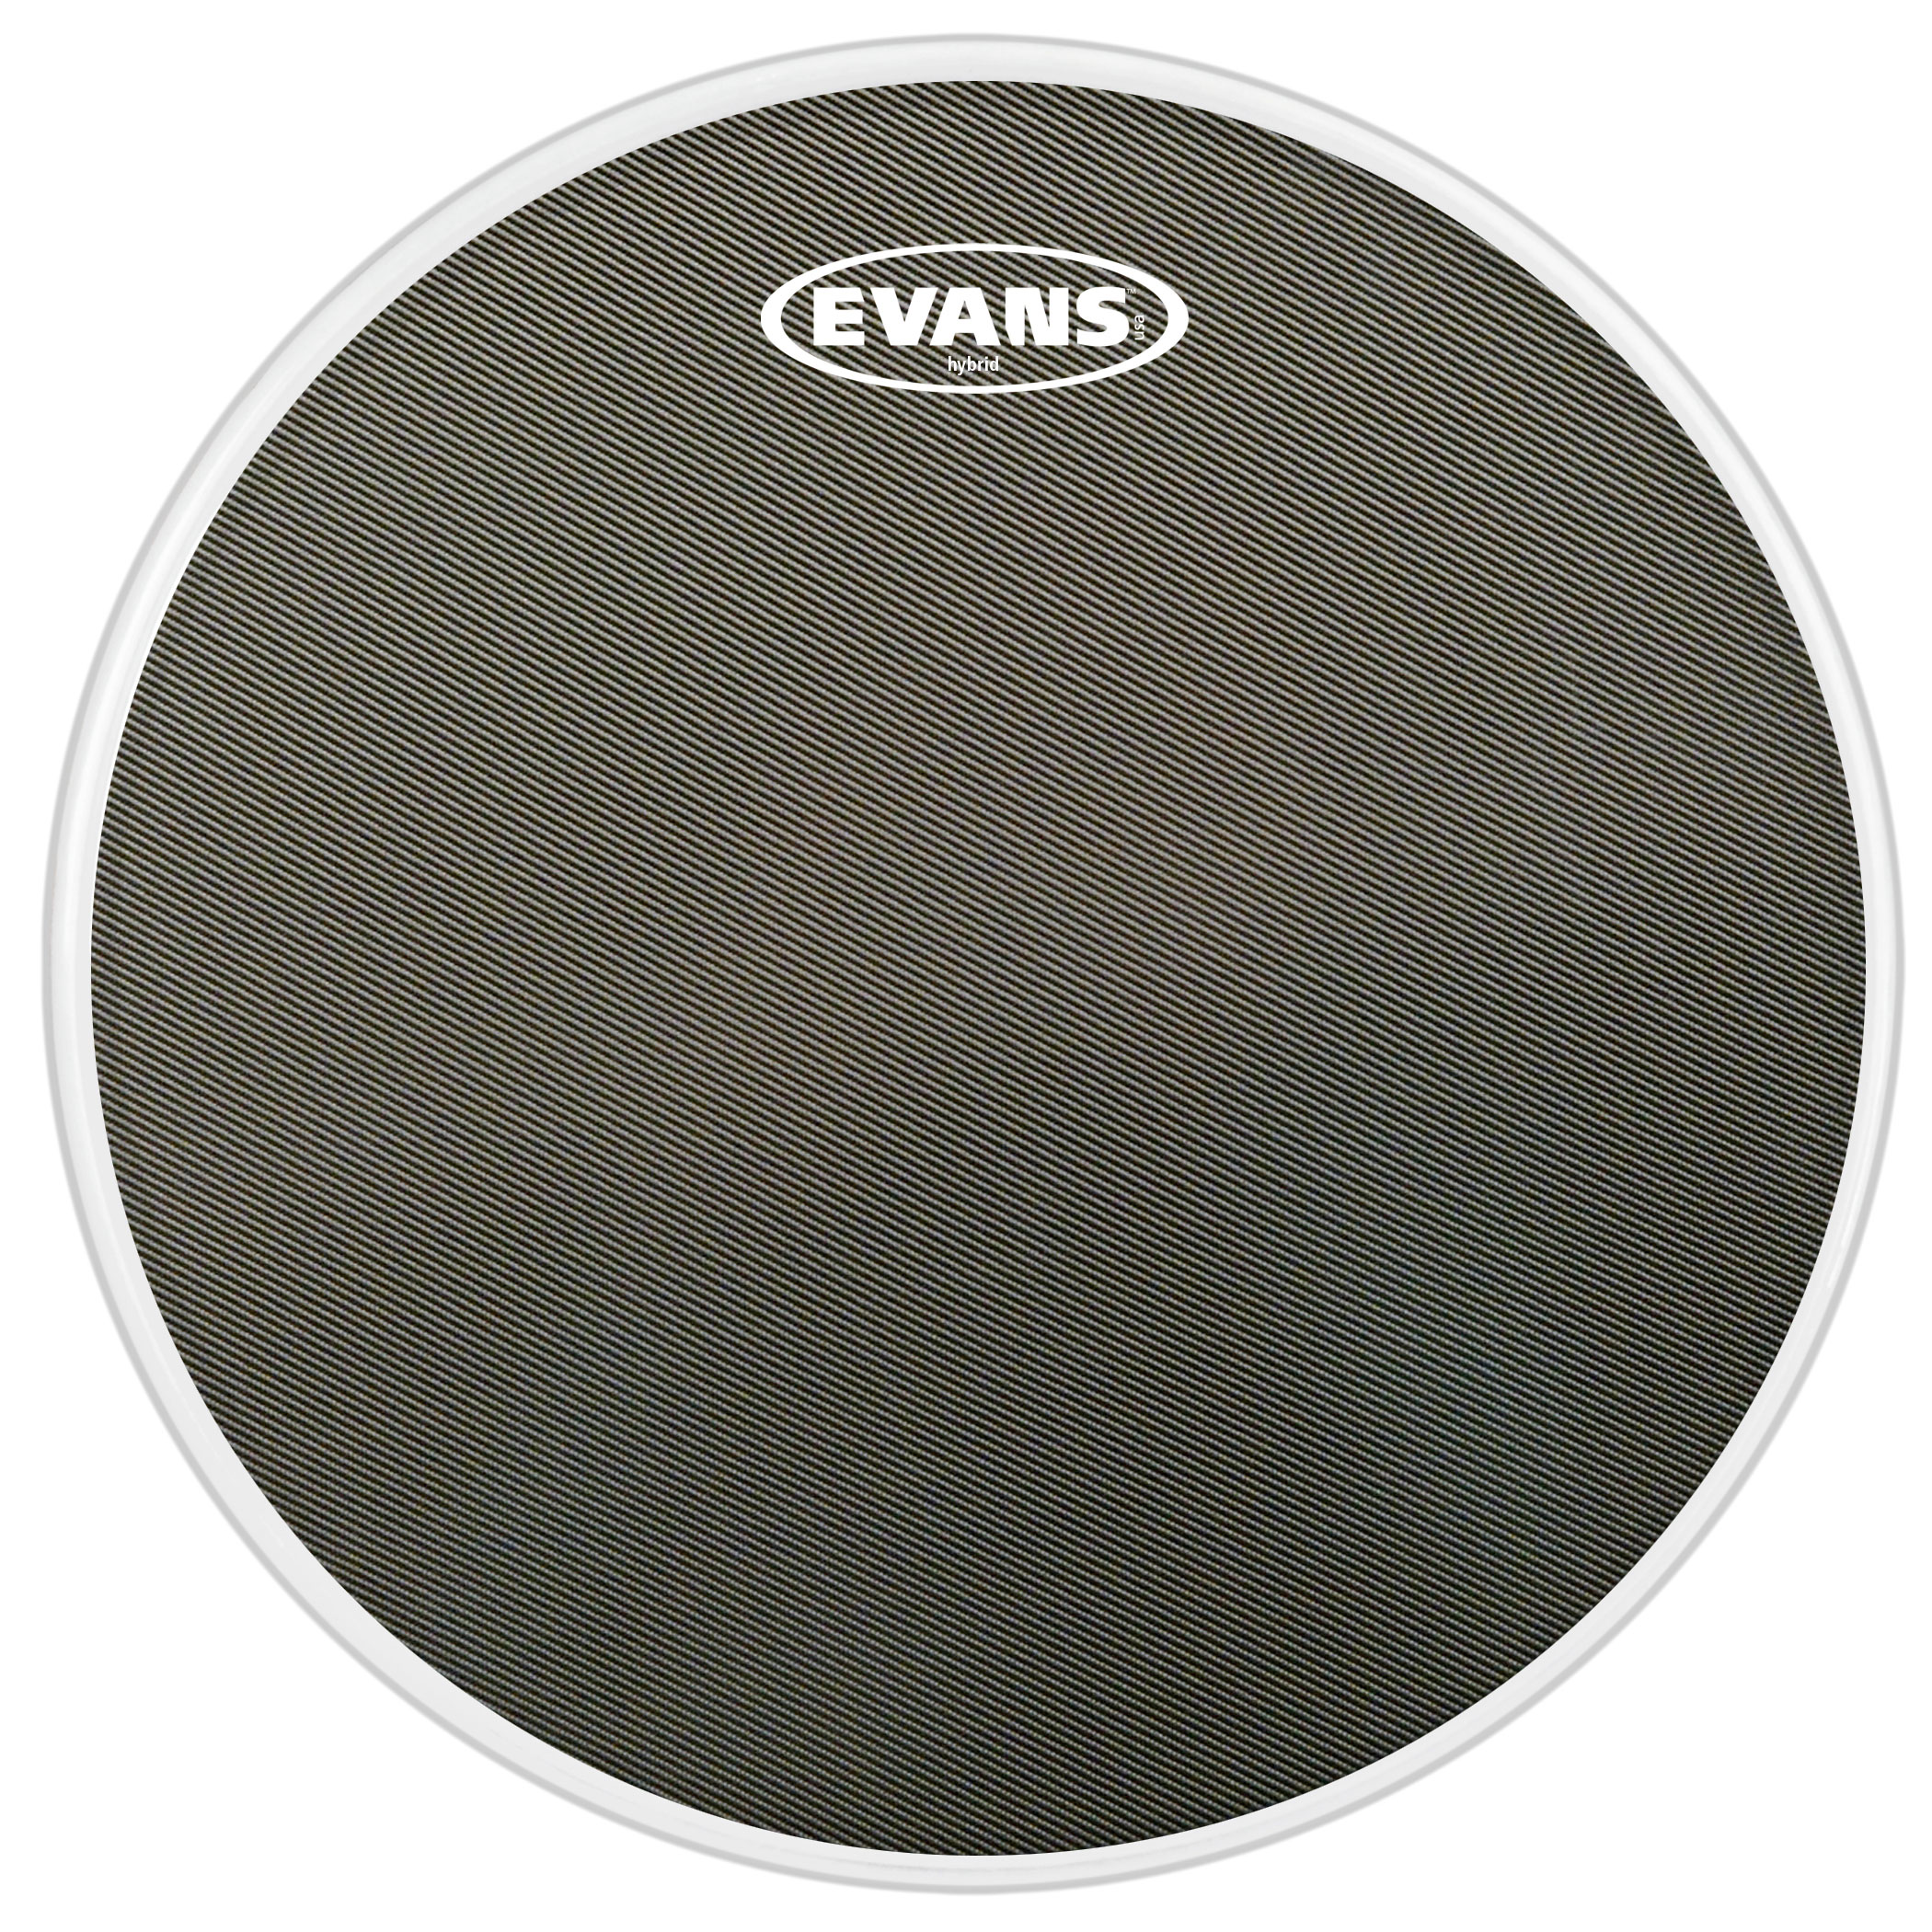 "Evans 14"" Hybrid Coated Snare Top Head"